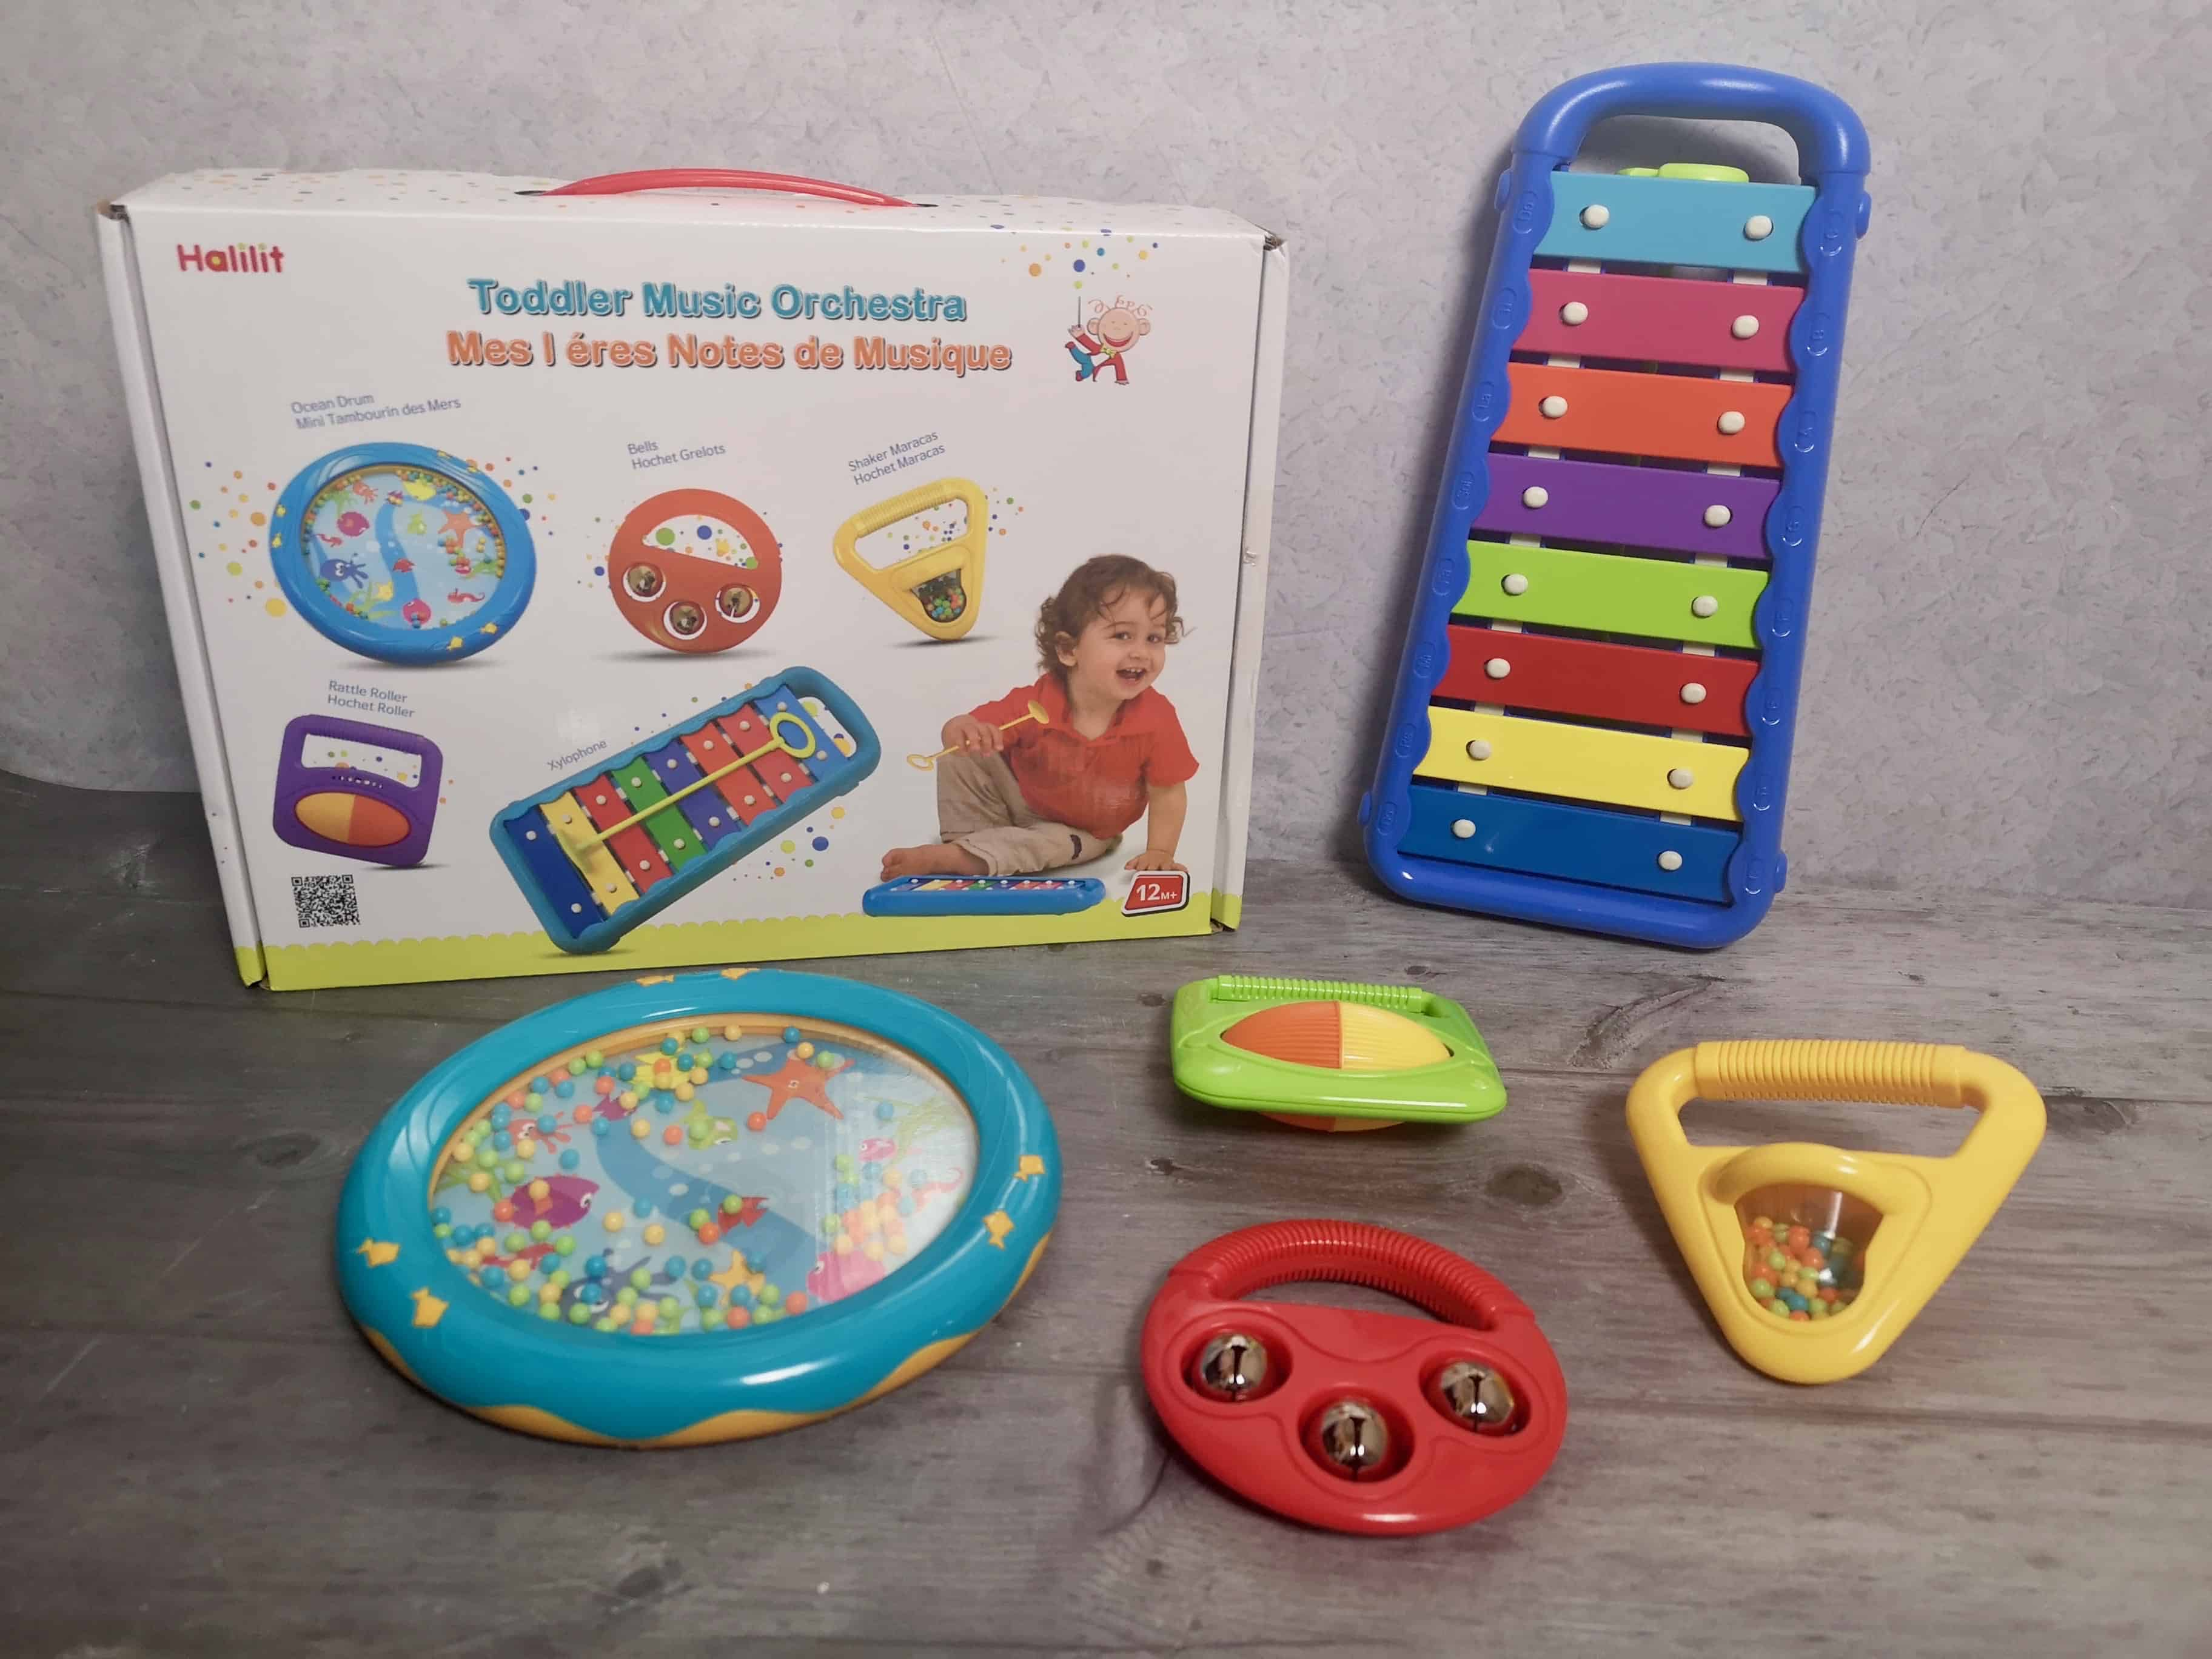 Halilit Toddler Music Orchestra Musical Instrument Set